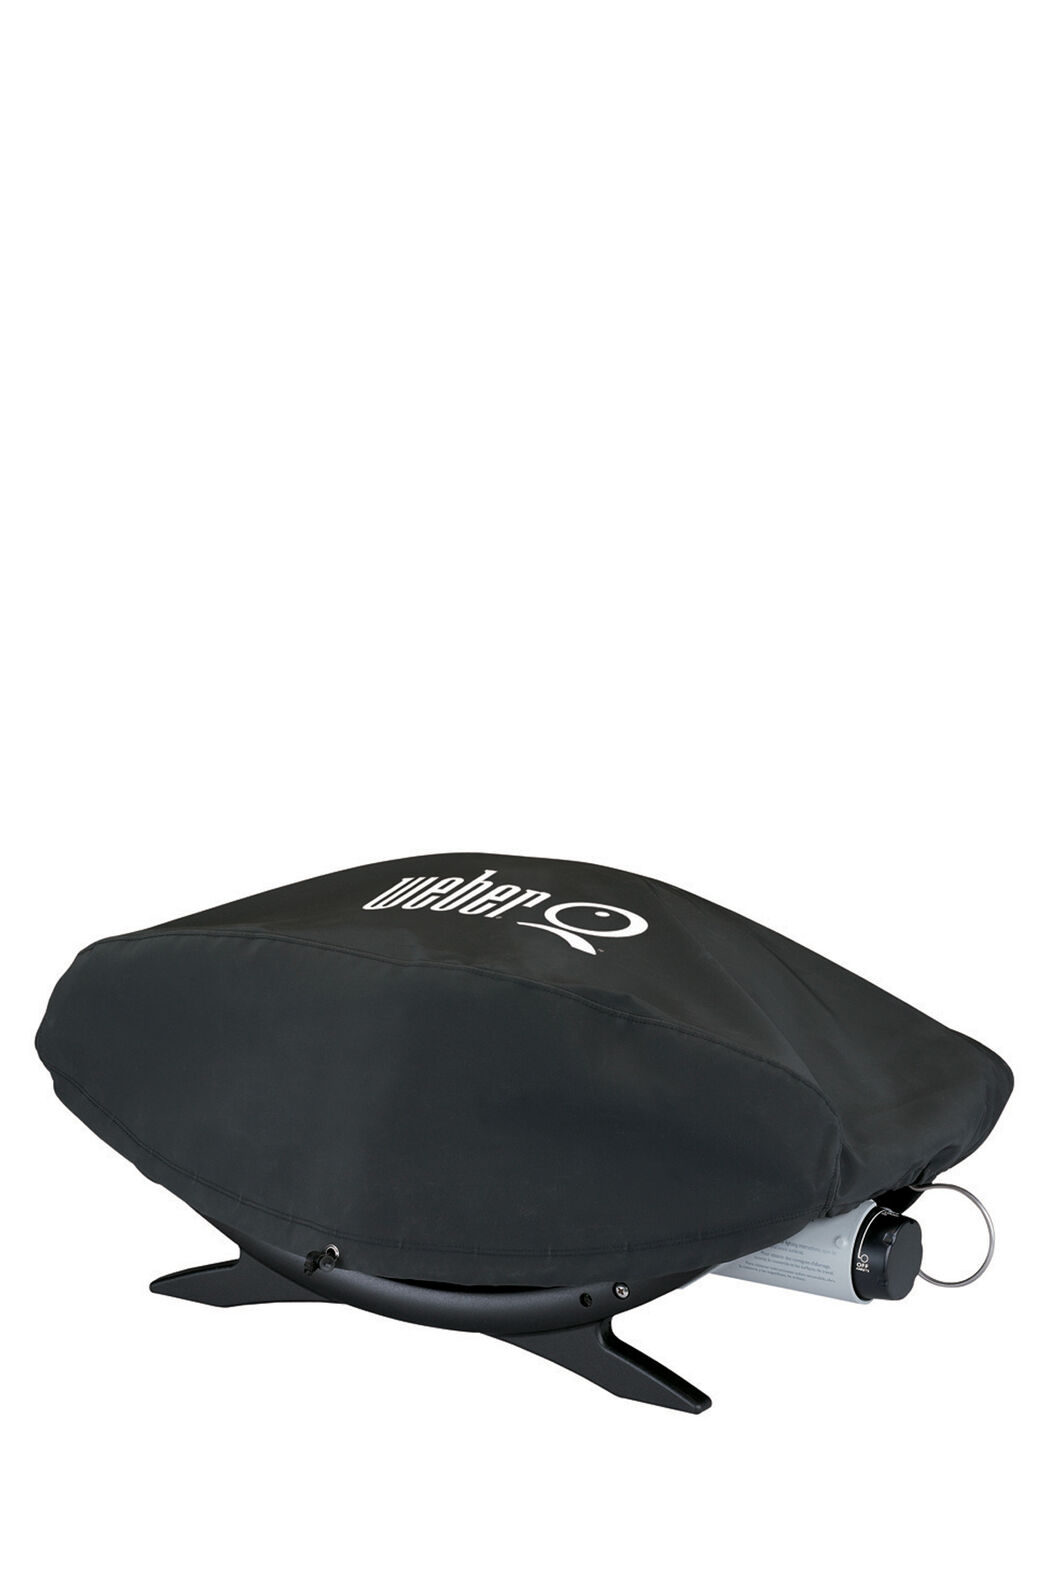 Weber Q2000 BBQ Cover, None, hi-res